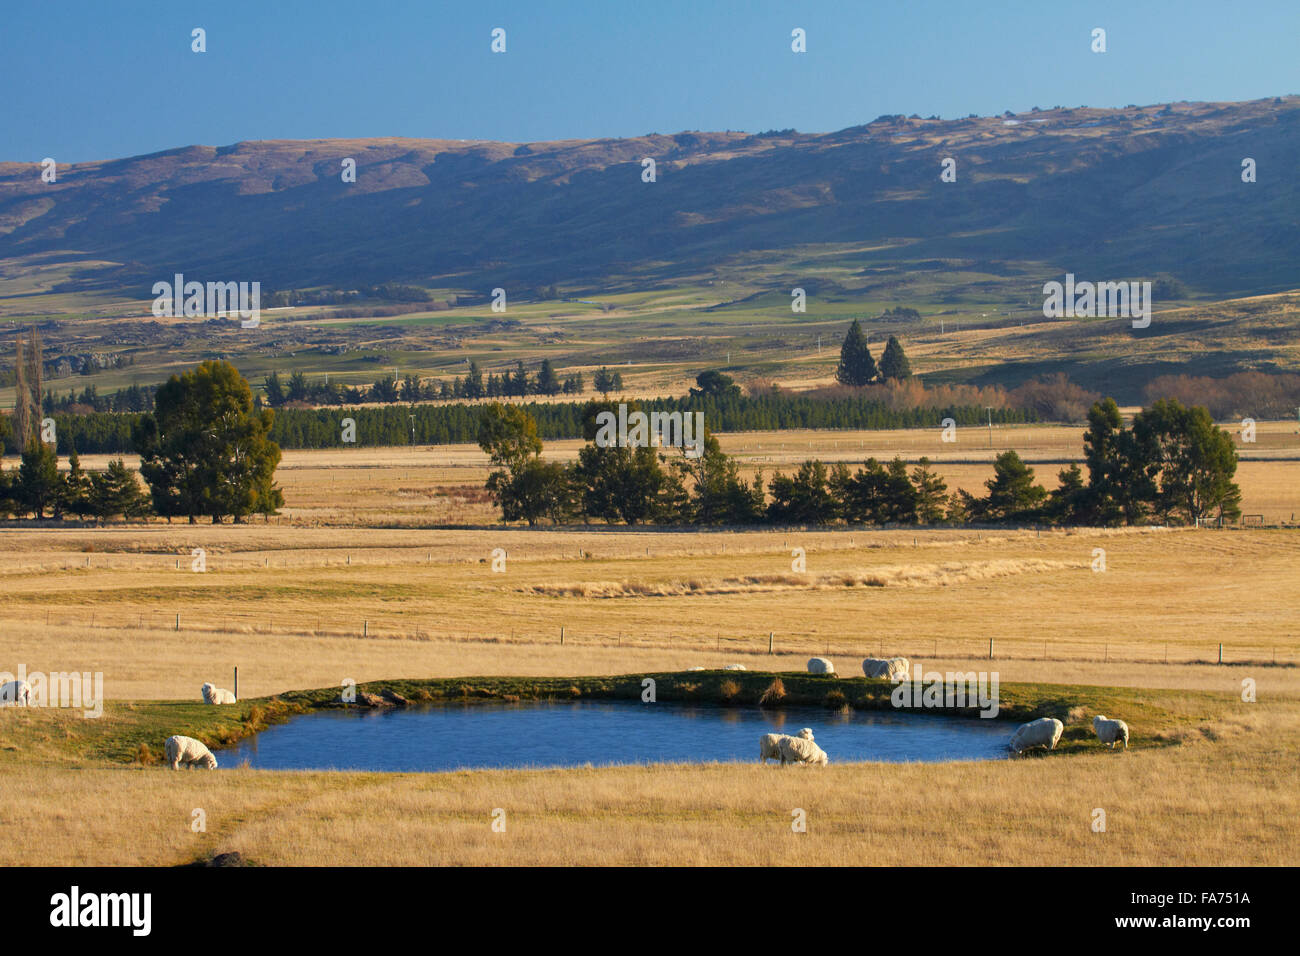 Sheep and irrigation pond, Maniototo, Central Otago, South Island, New Zealand - Stock Image